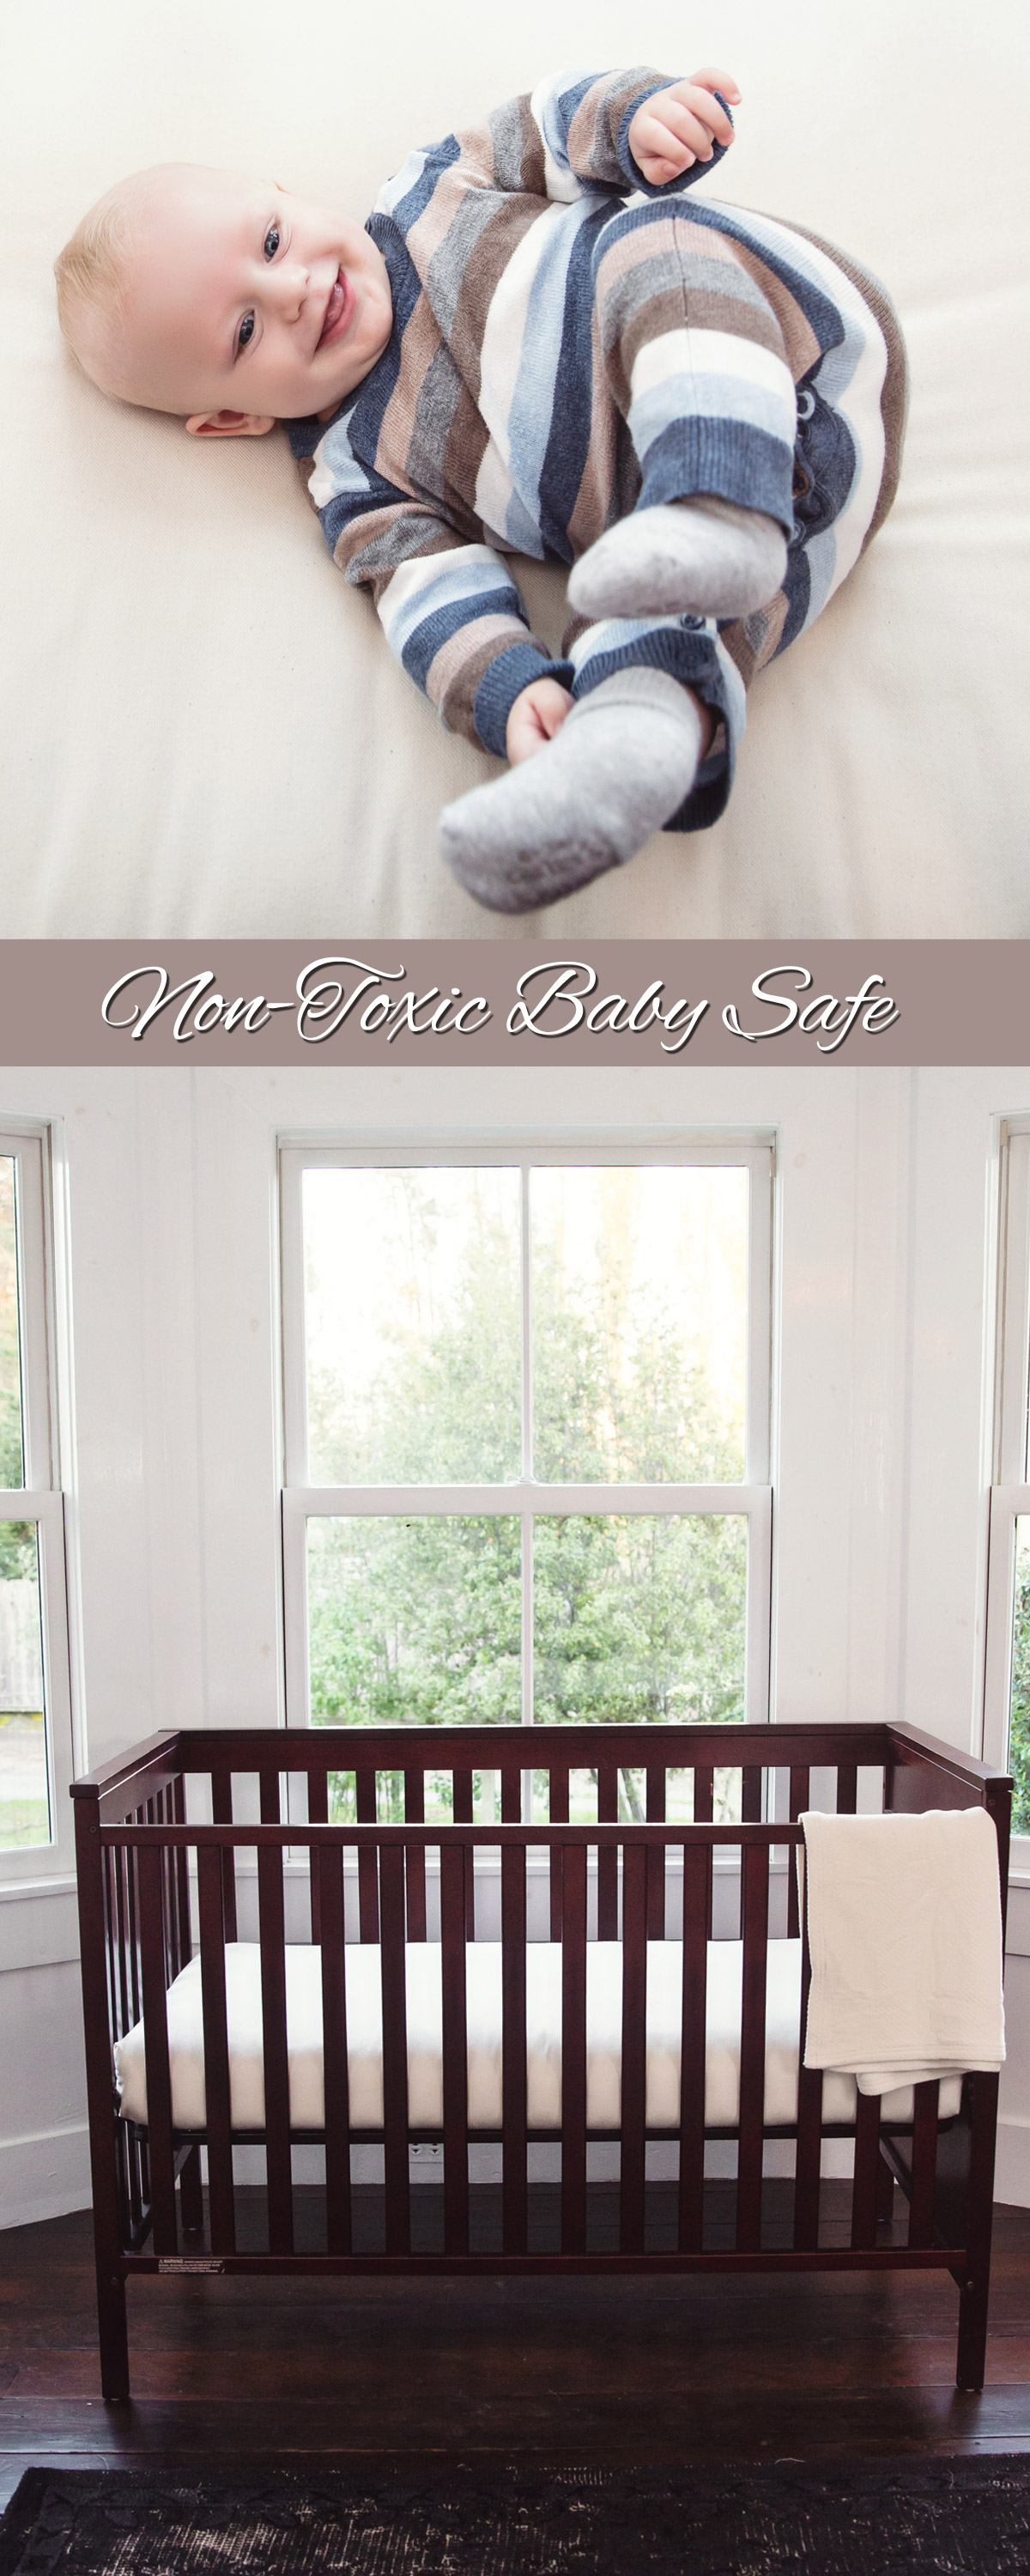 Organic Crib Mattress by The Futon Shop - The Best Crib Mattress - Latex Toddler Bed